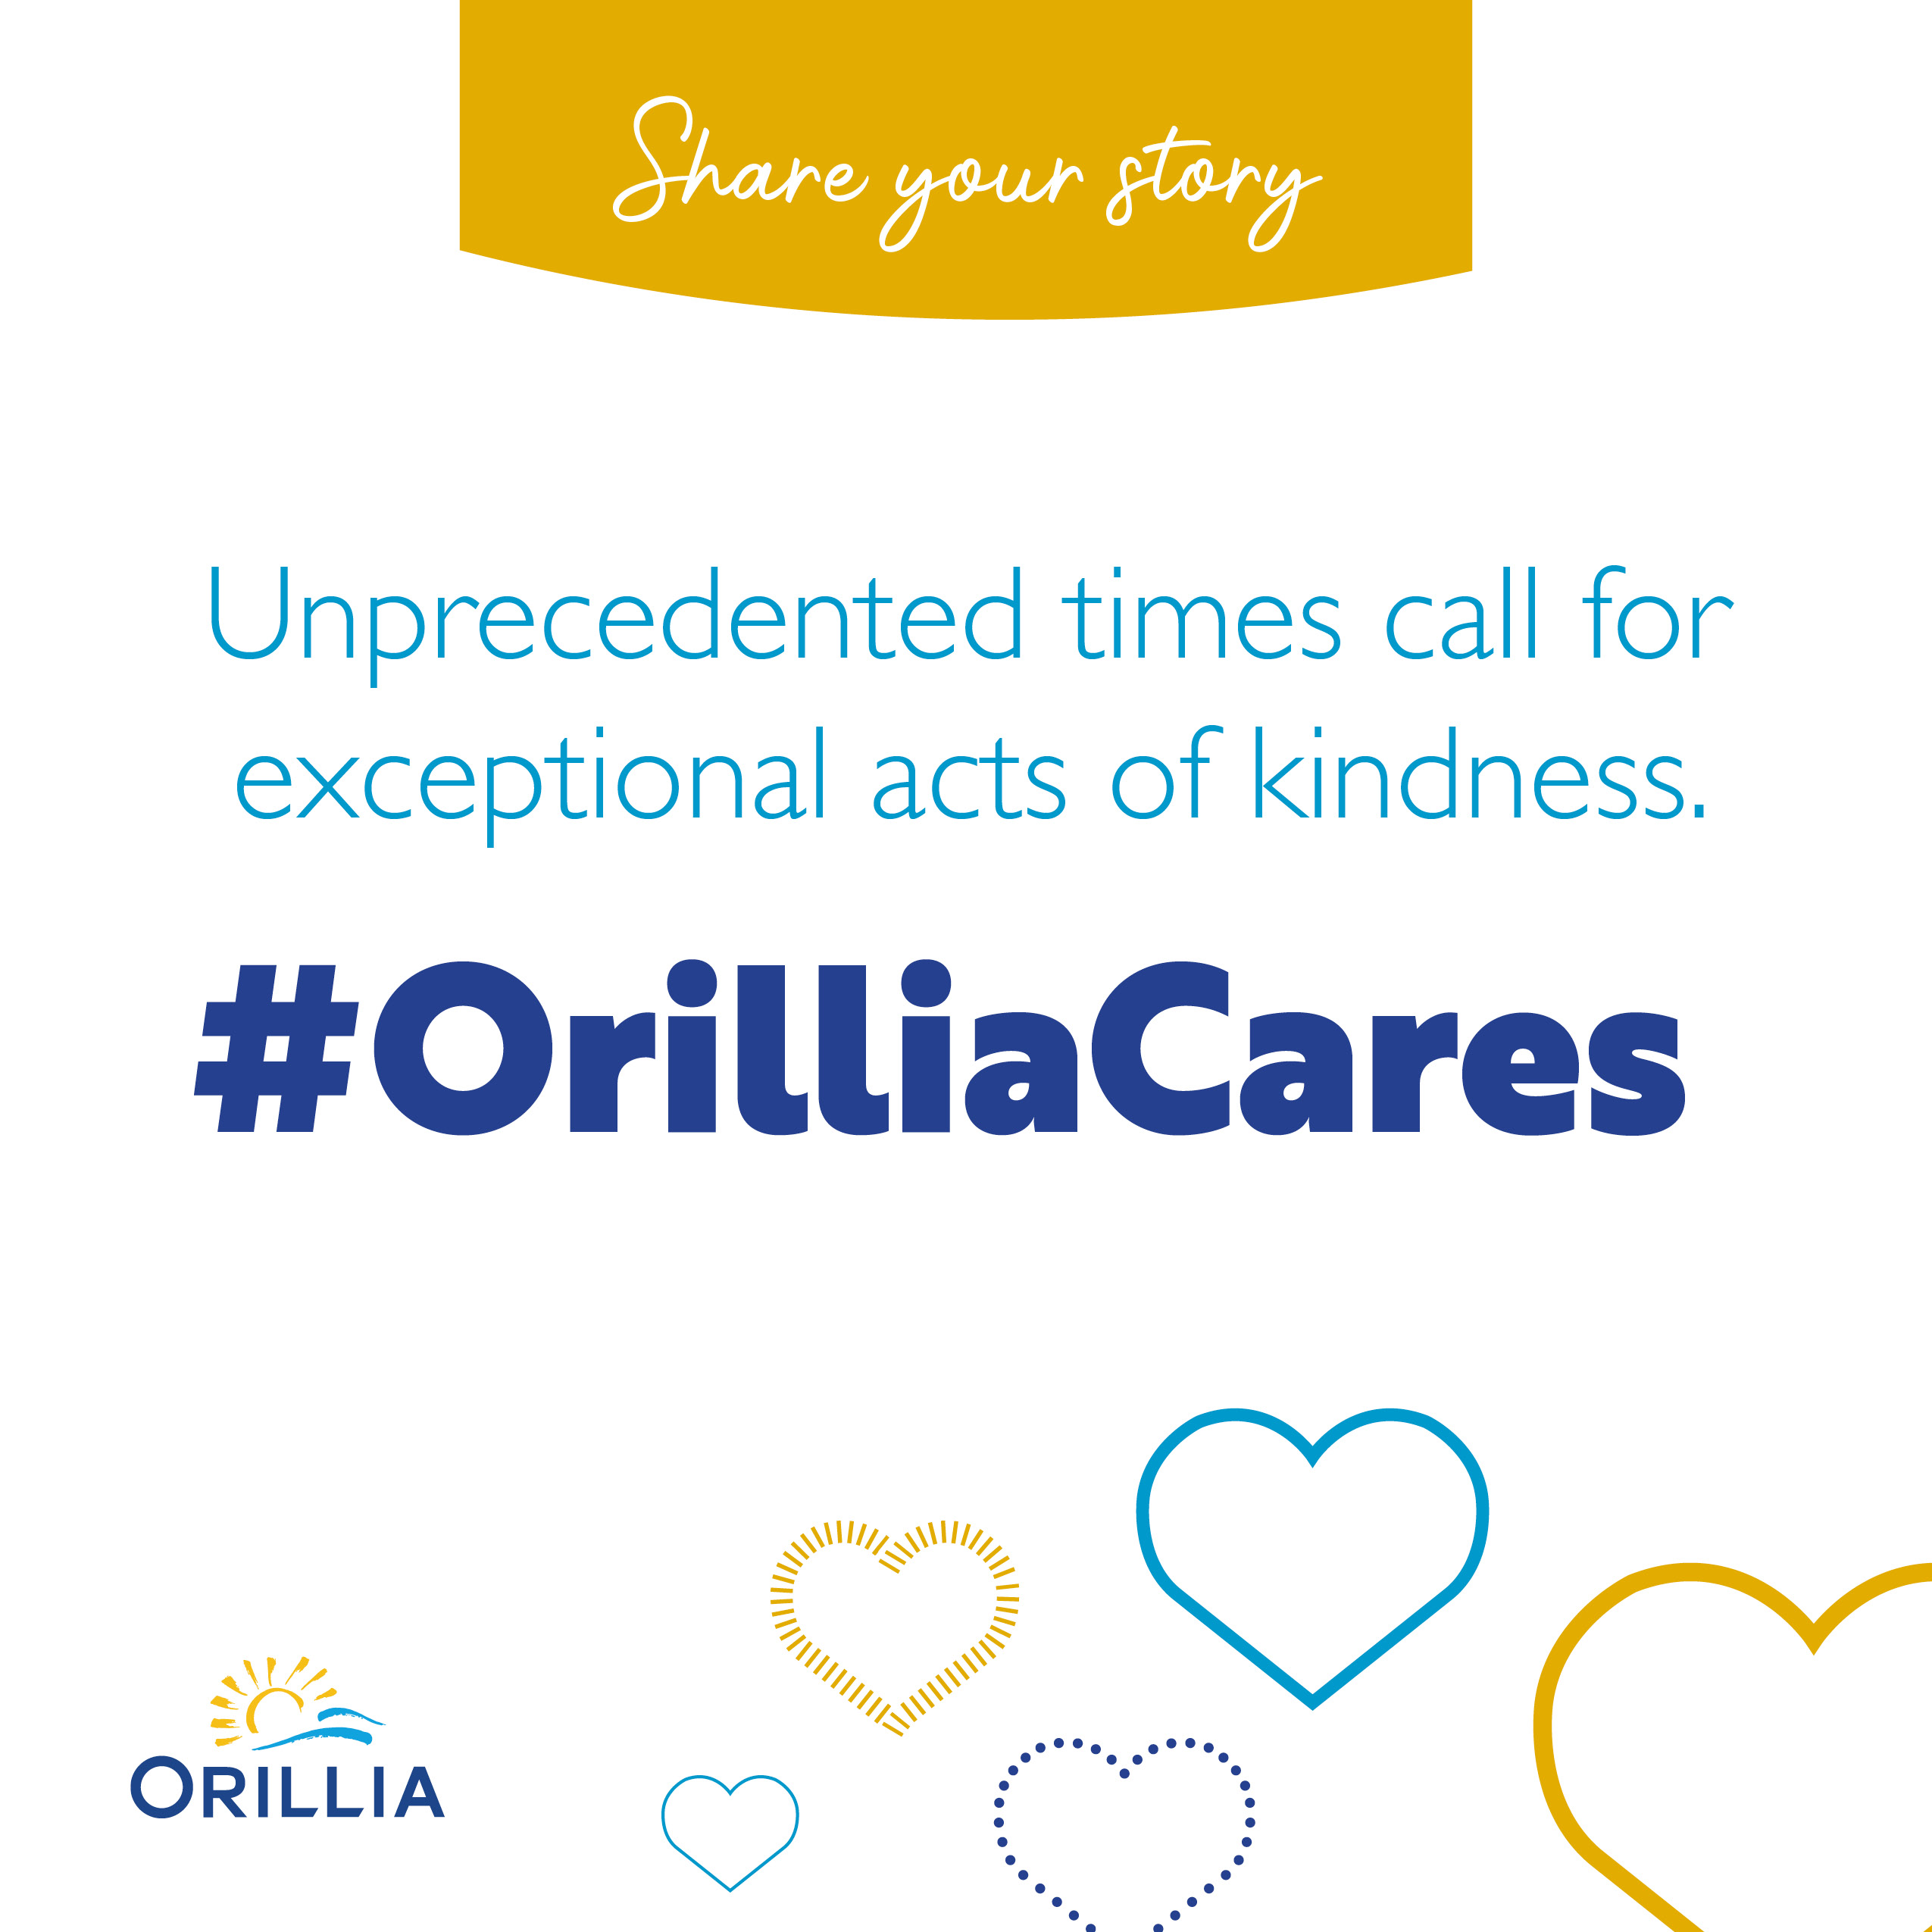 Text-based image with hearts. The text reads: Share your story. Unprecedented times call for exceptional acts of kindness. Orillia Cares.